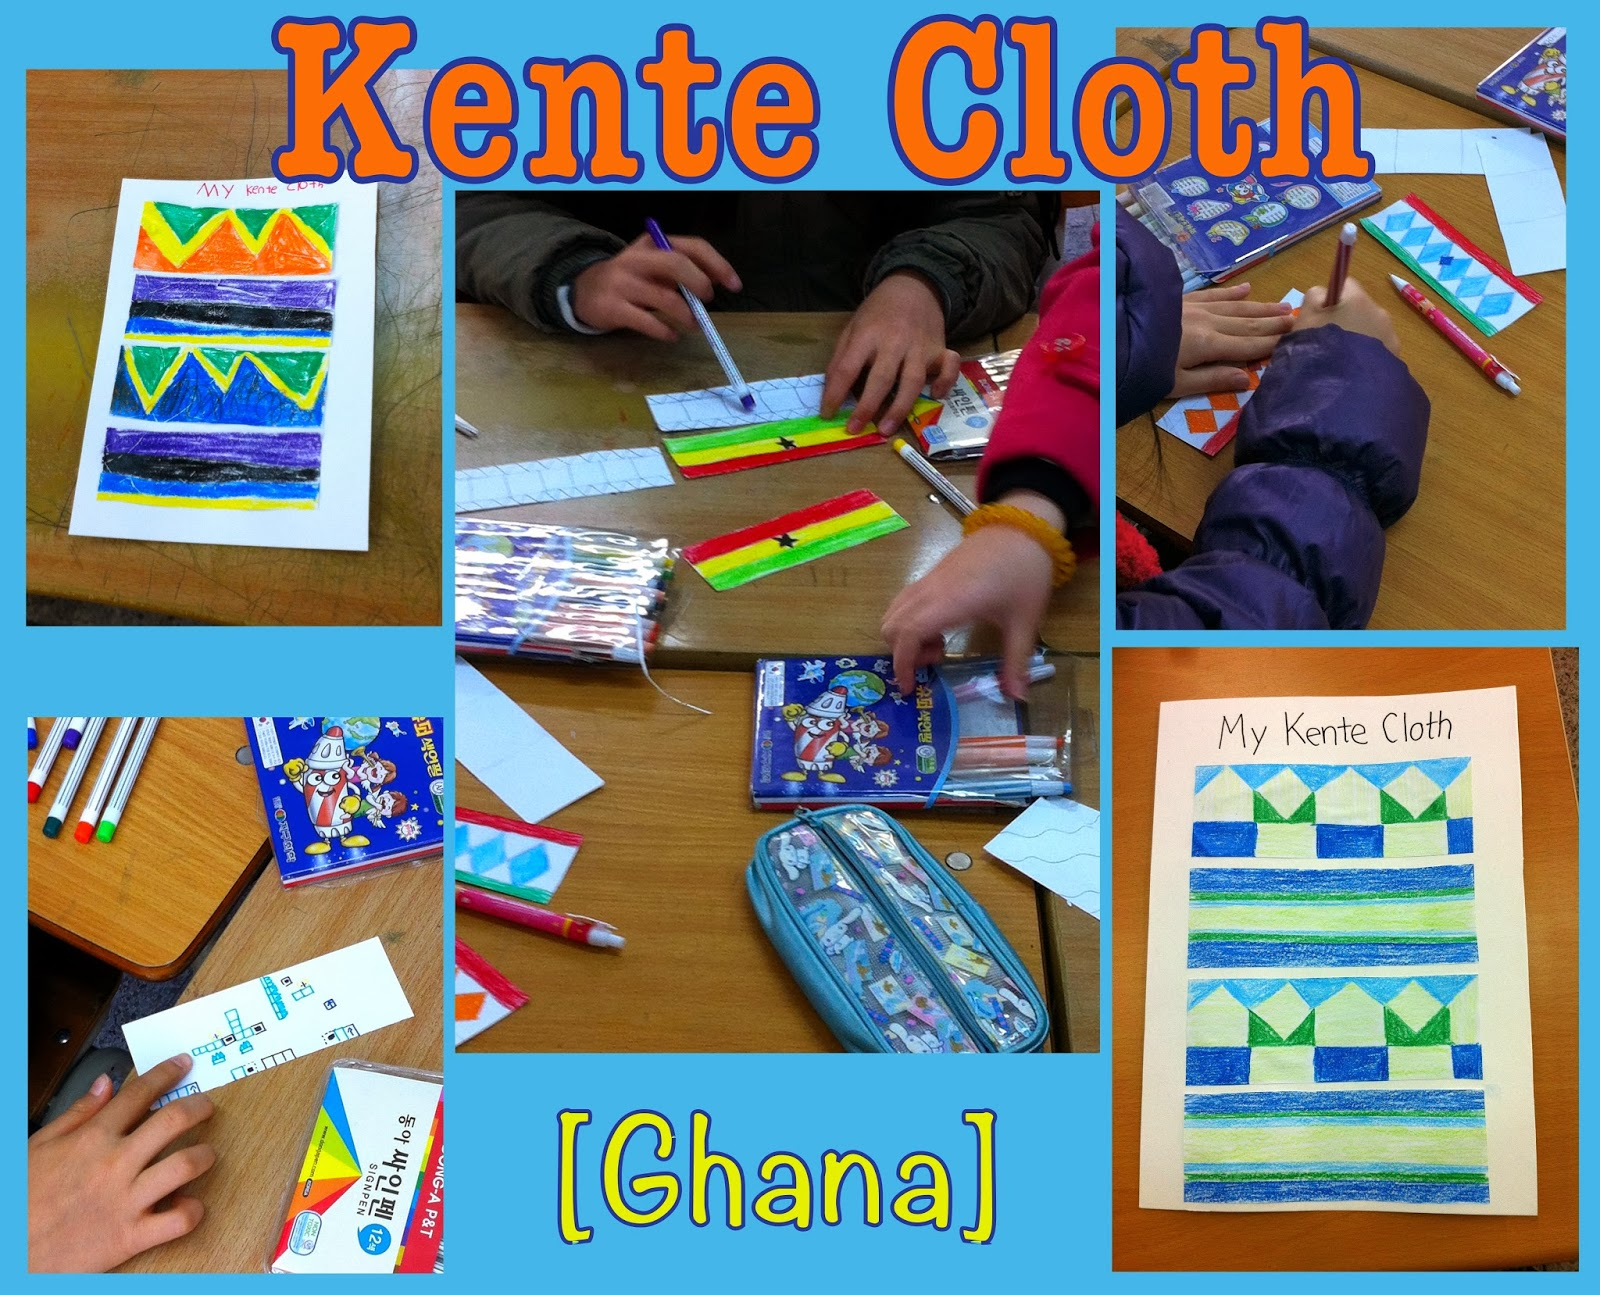 Kente cloth paper art project elementary